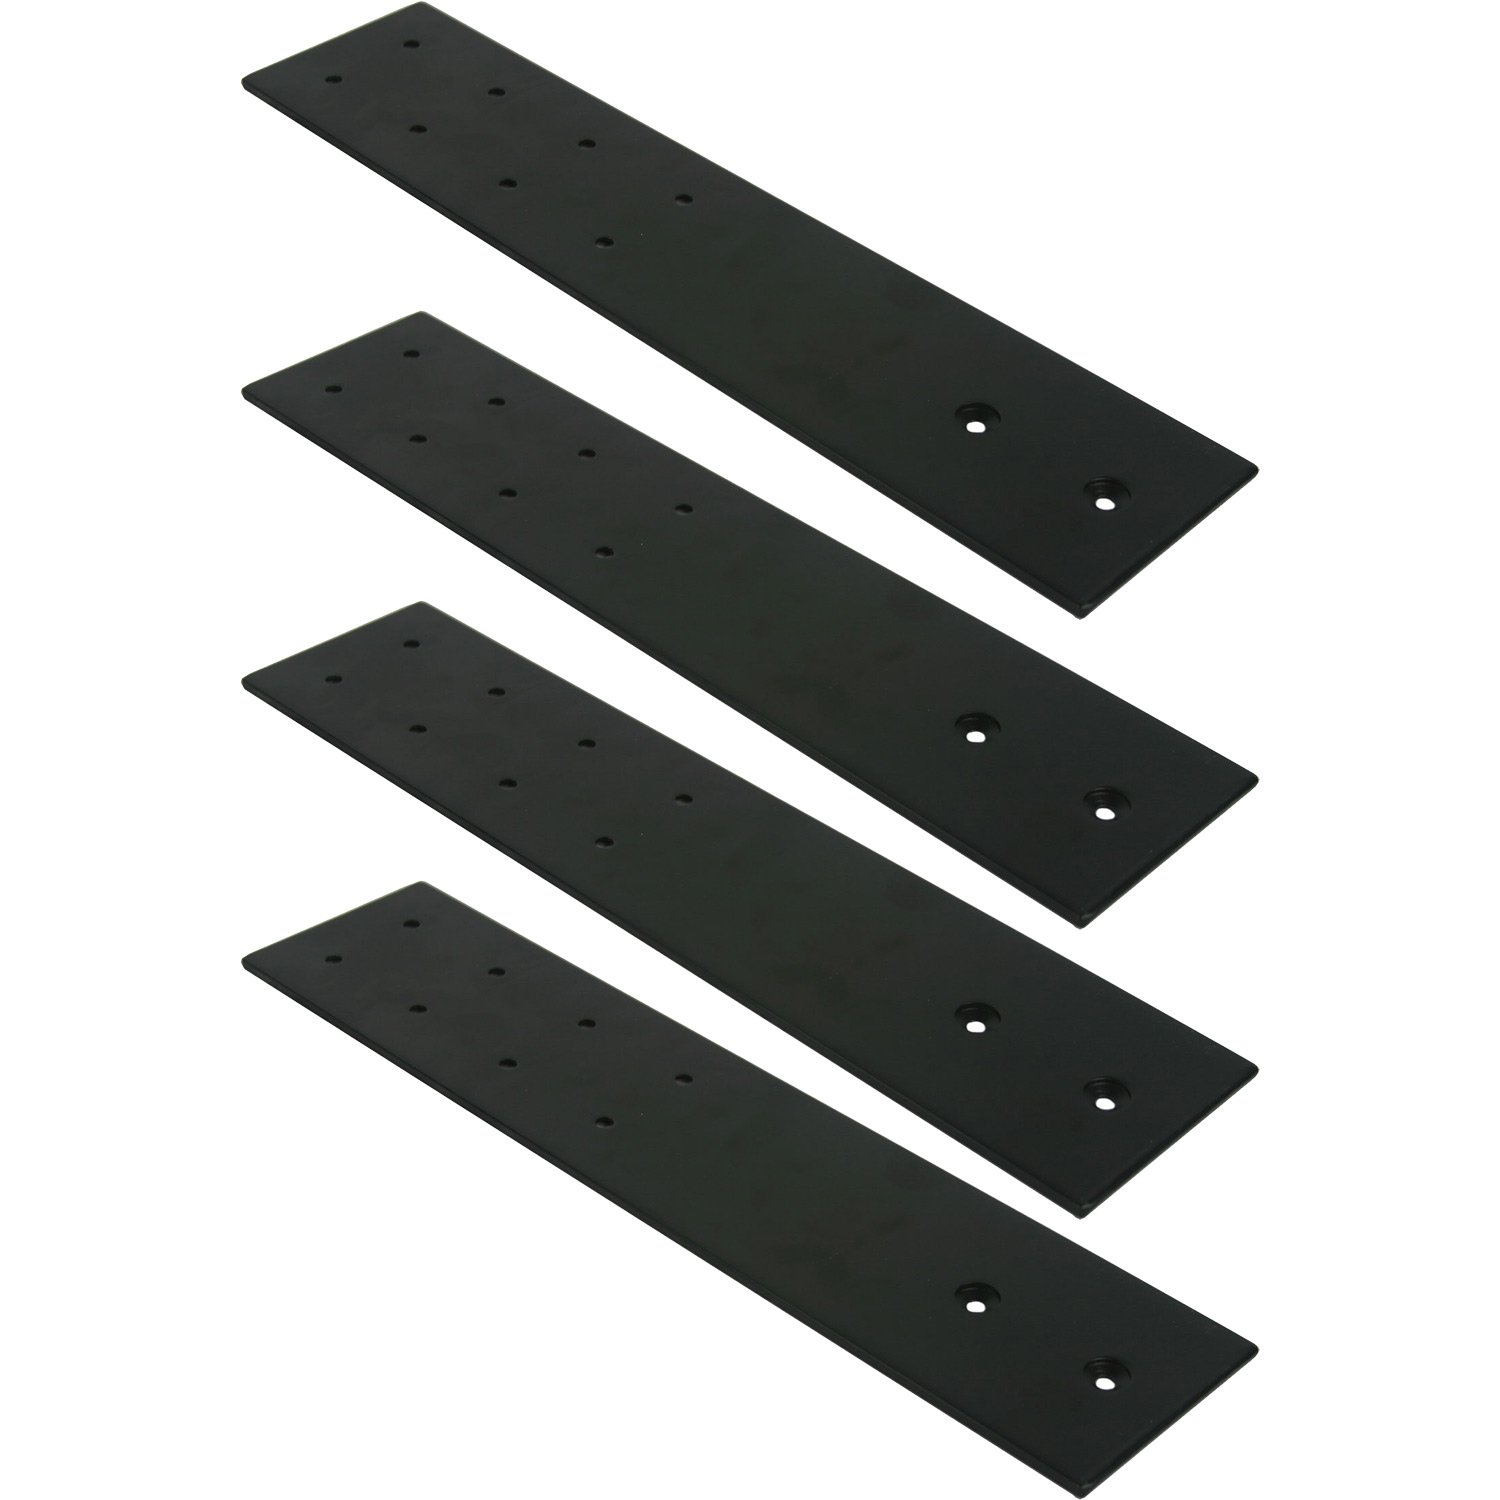 FastCap 09394 BL 3 1 2 inches x 16 inches Black SpeedBrace Stealth 300LB 4 Pack